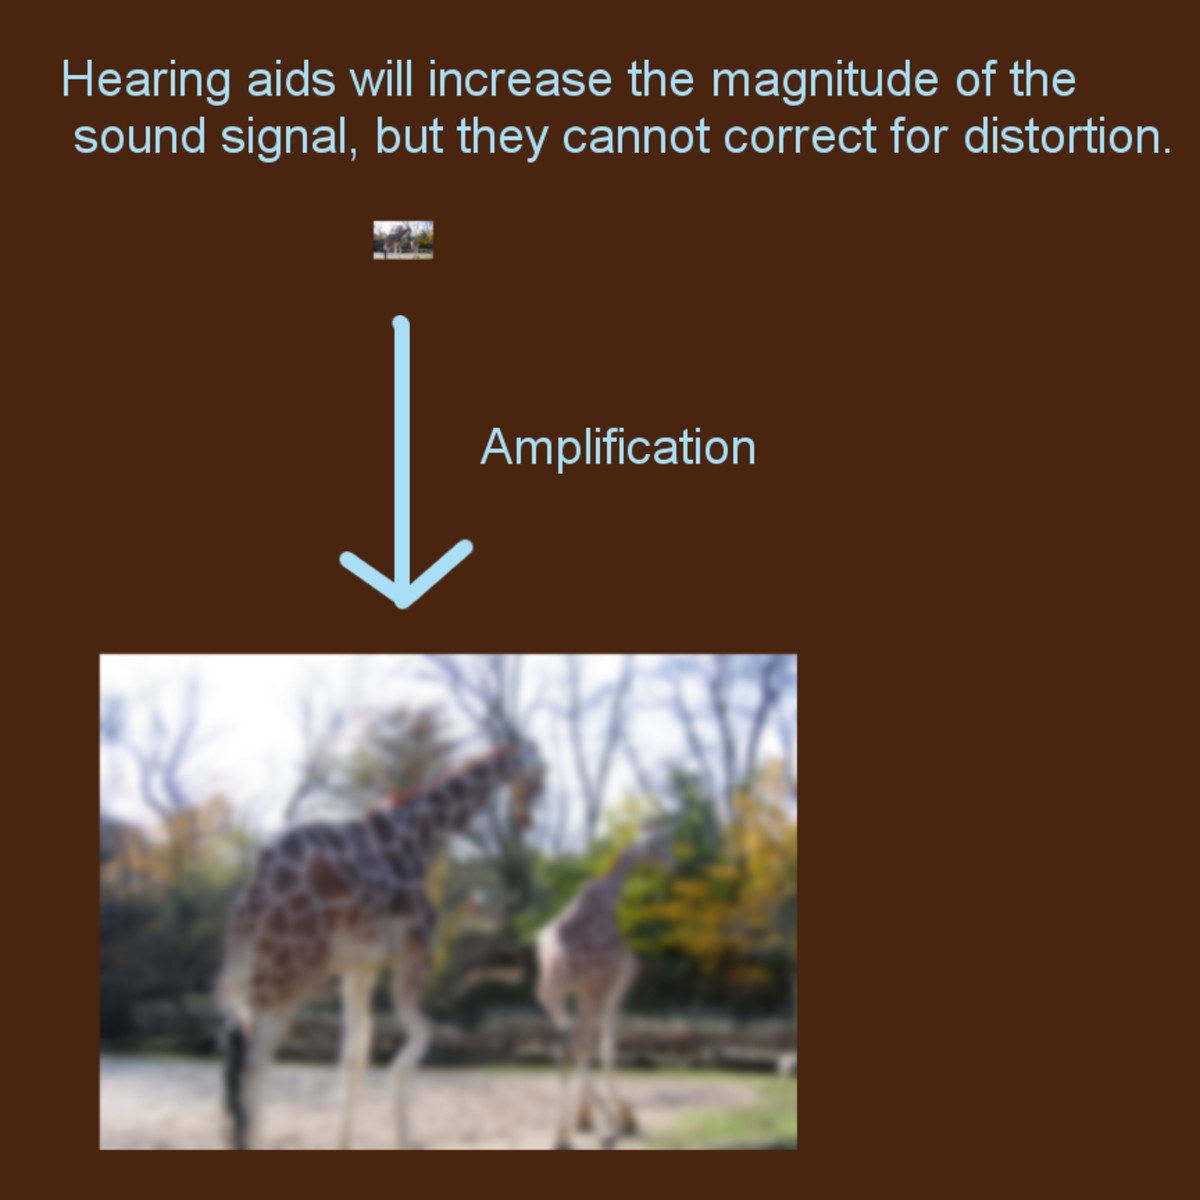 Hearing aids will make sound louder, but they cannot correct distortion caused by damaged cochlear hair cells (click to enlarge).